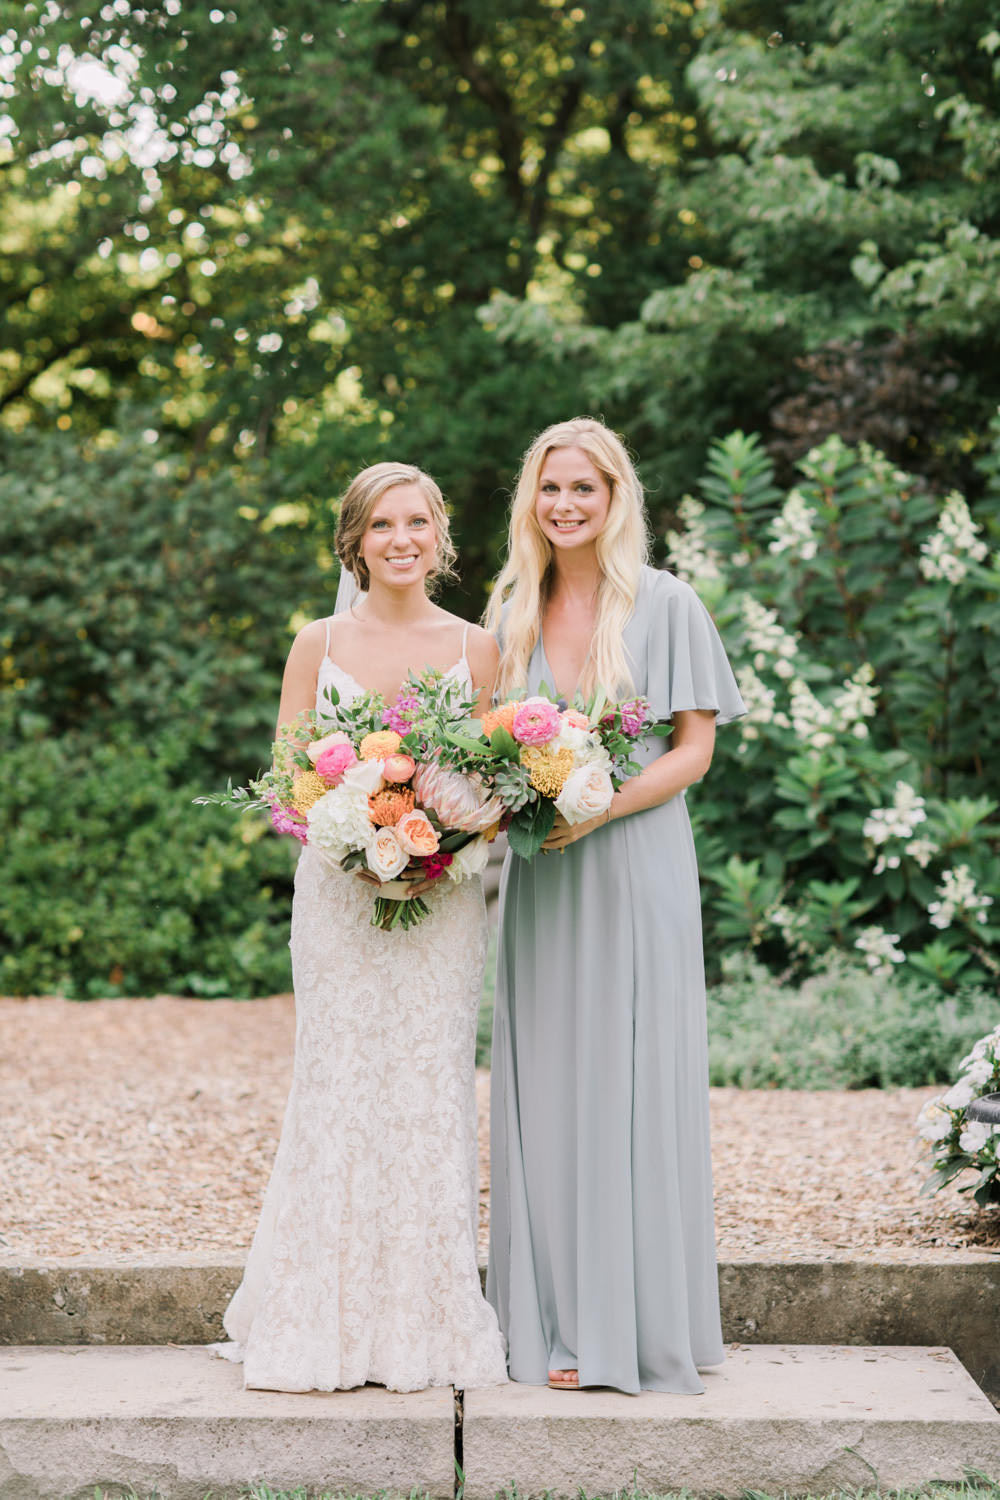 Yew Dell Wedding Photo of Bride and Maid of Honor holding bouquets in botanical garden